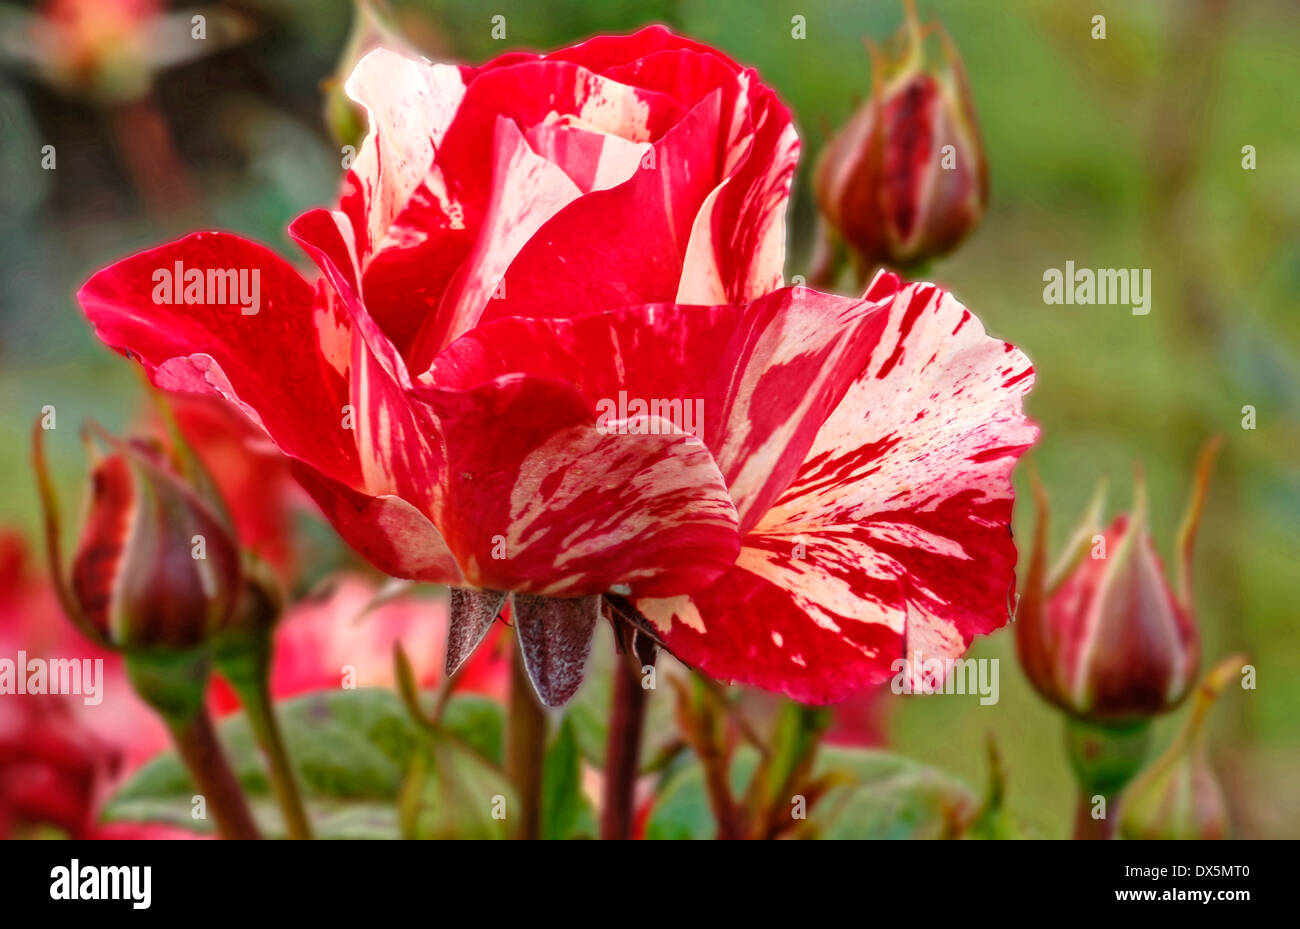 red-white roses - Stock Image